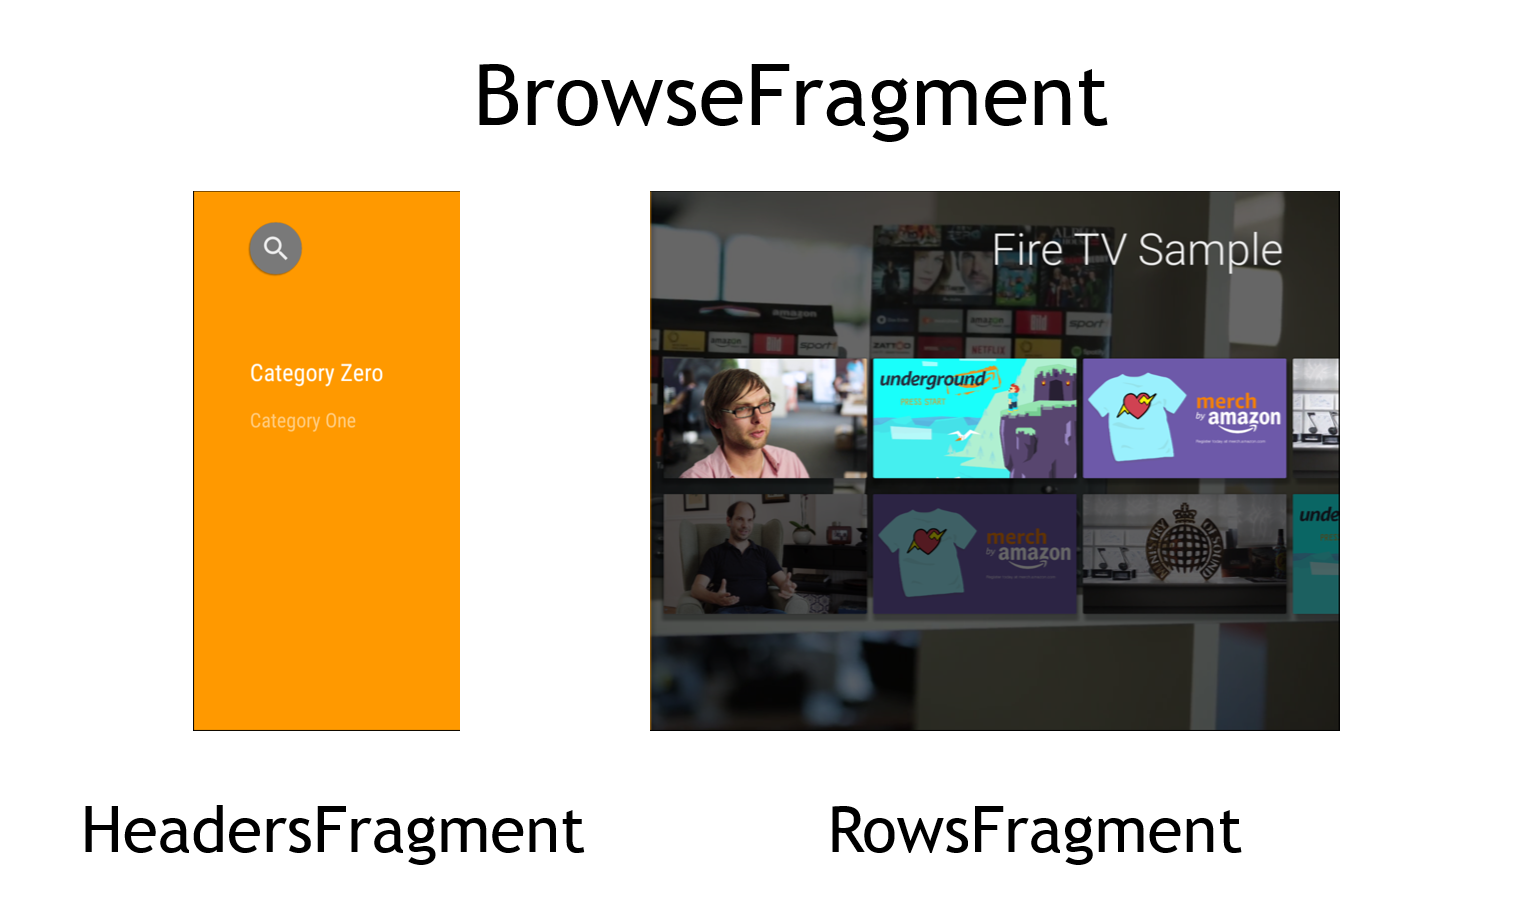 The BrowseFragment itself is actually composed by two sub-fragments: the HeadersFragment and the RowsFragment.